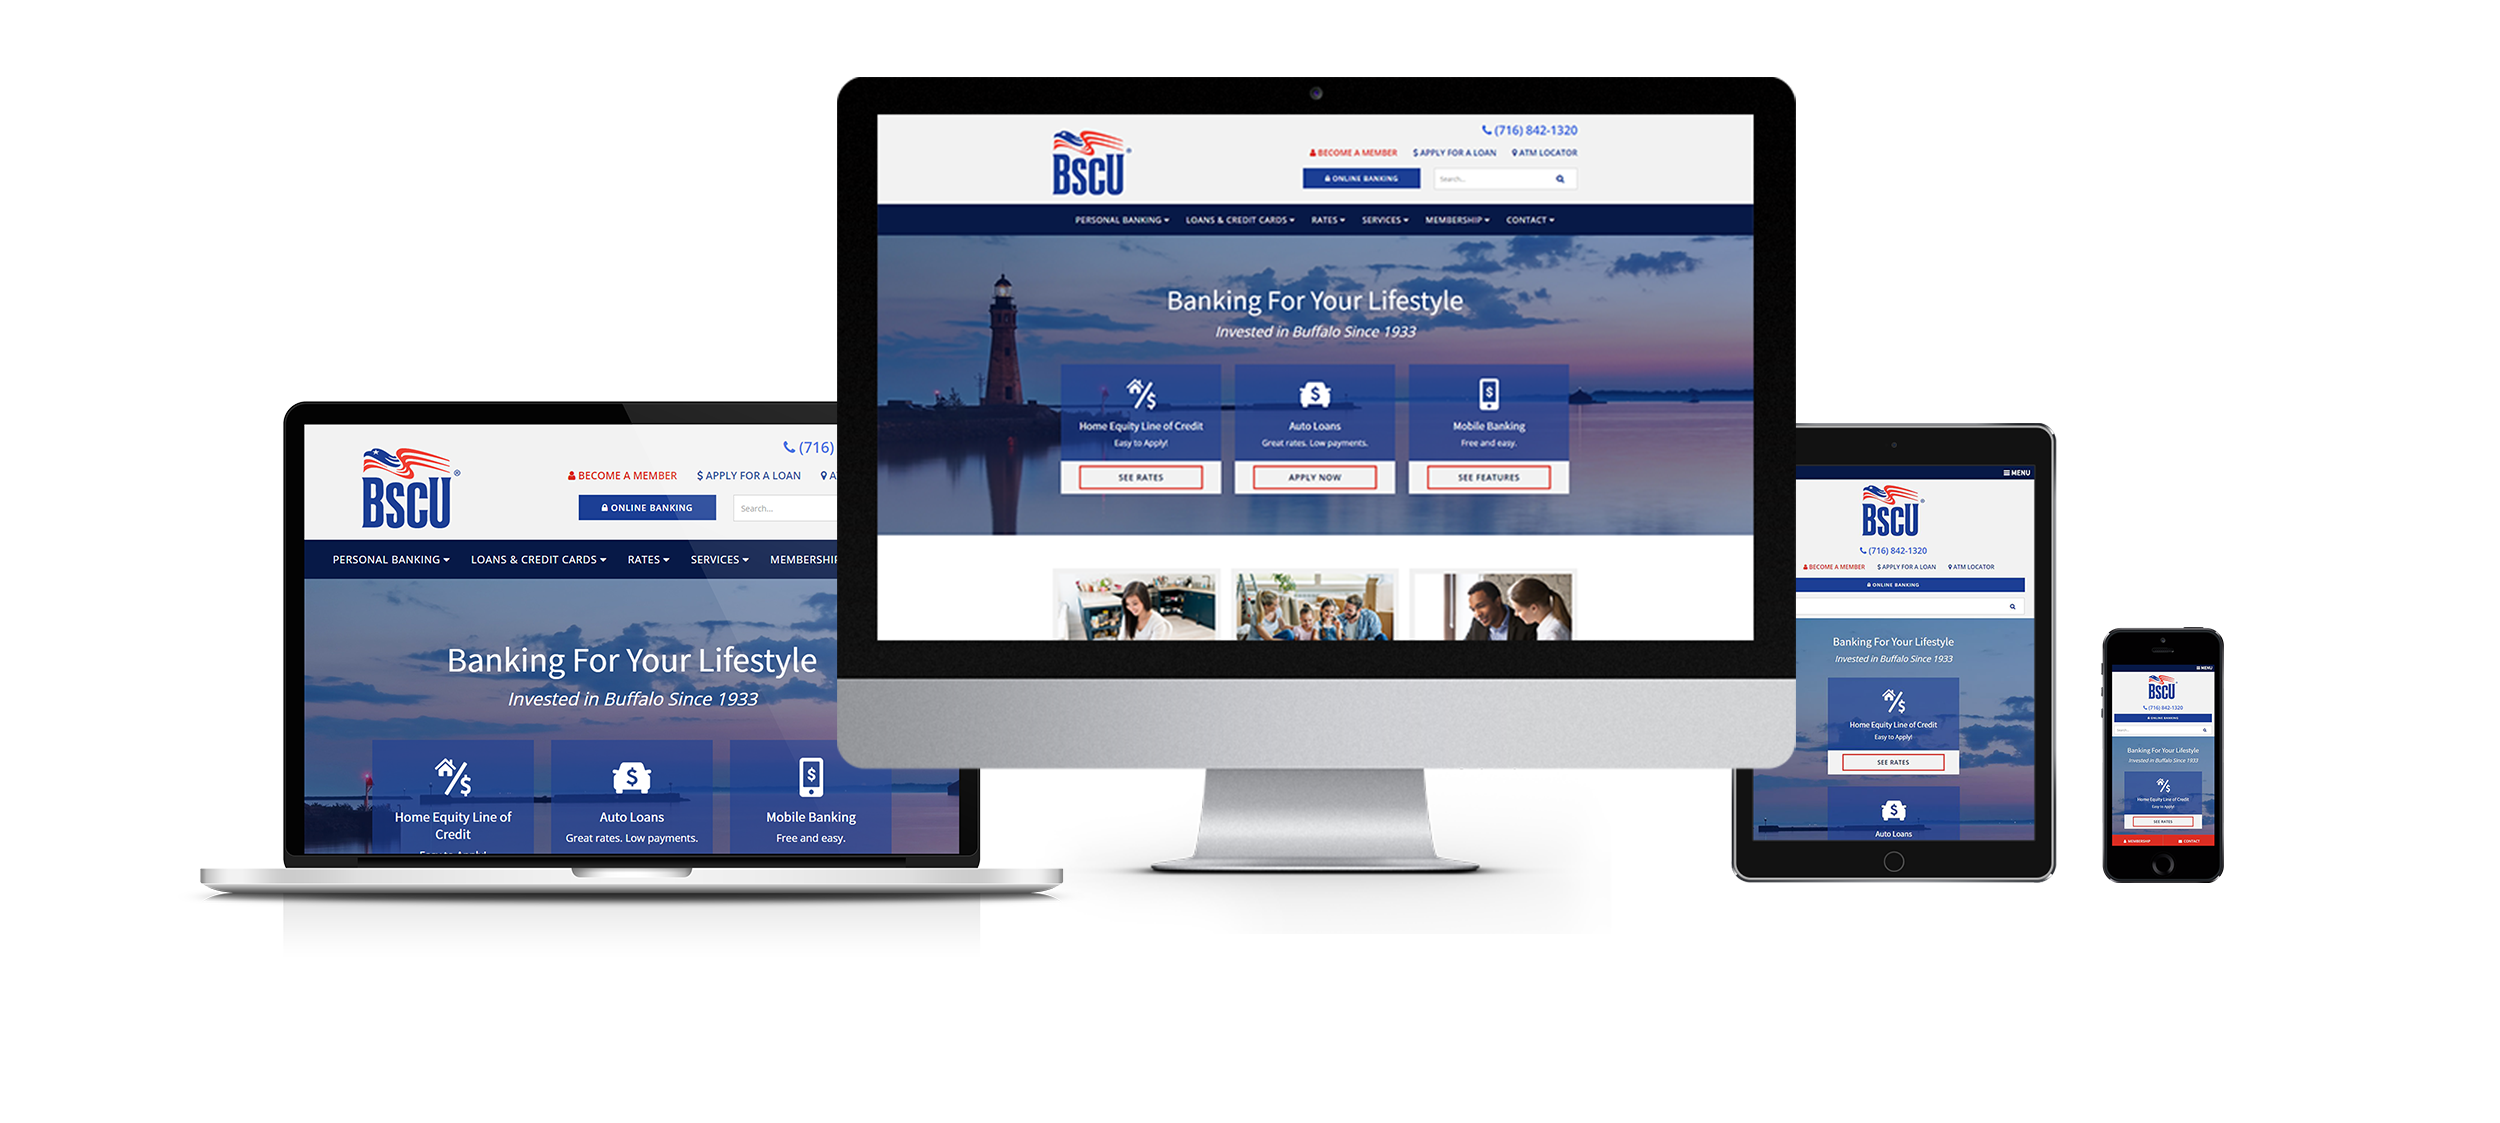 credit union website design near buffalo ny responsive website design for bscu by acs web design and seo